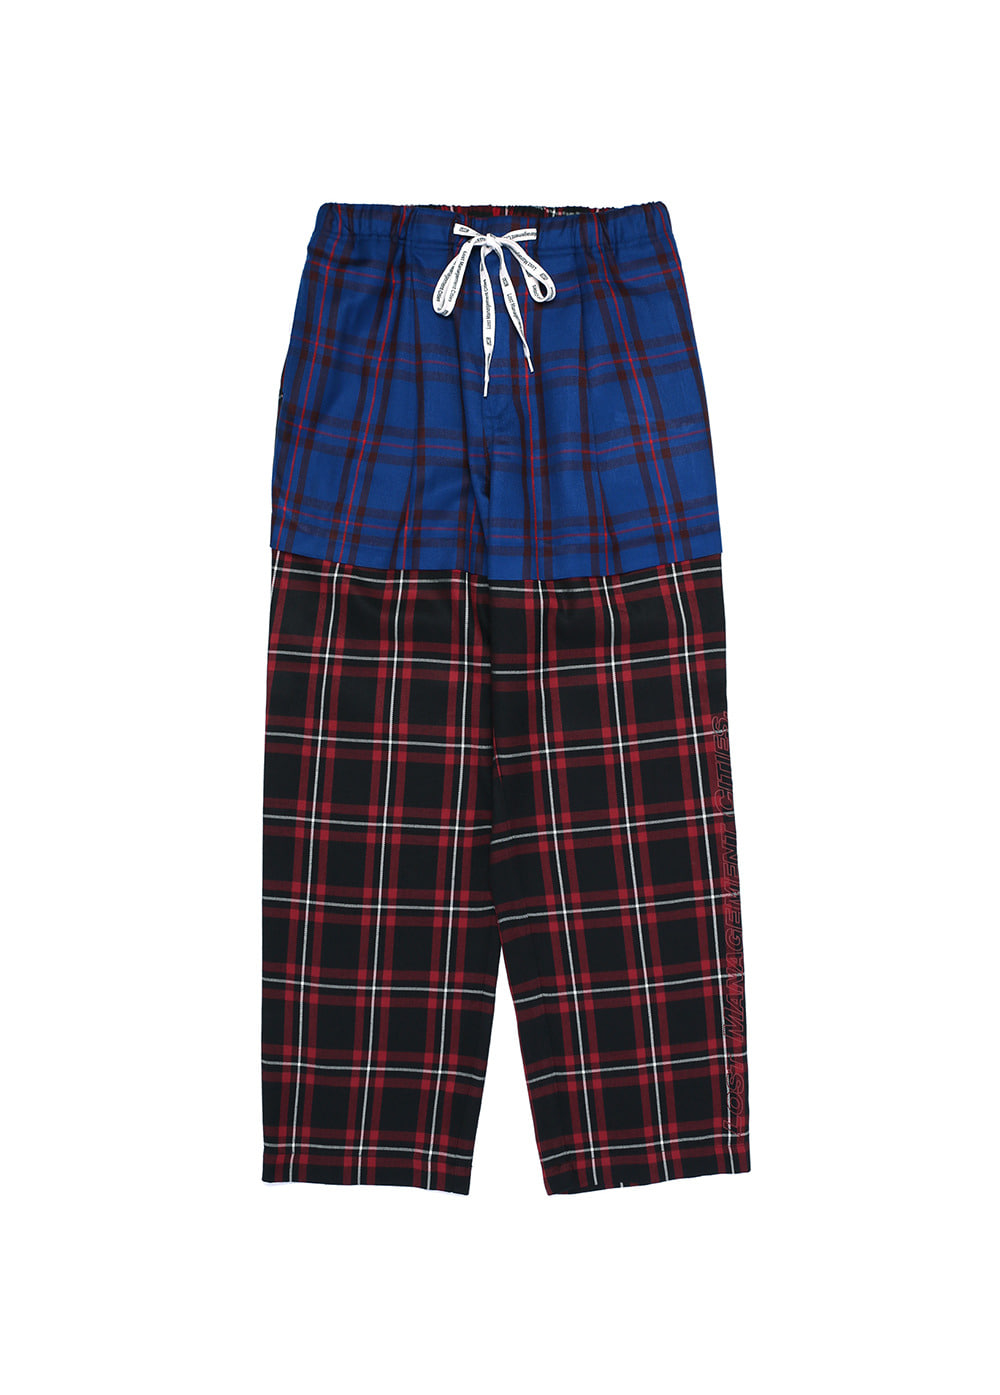 LMC PLAID SUIT PANTS red